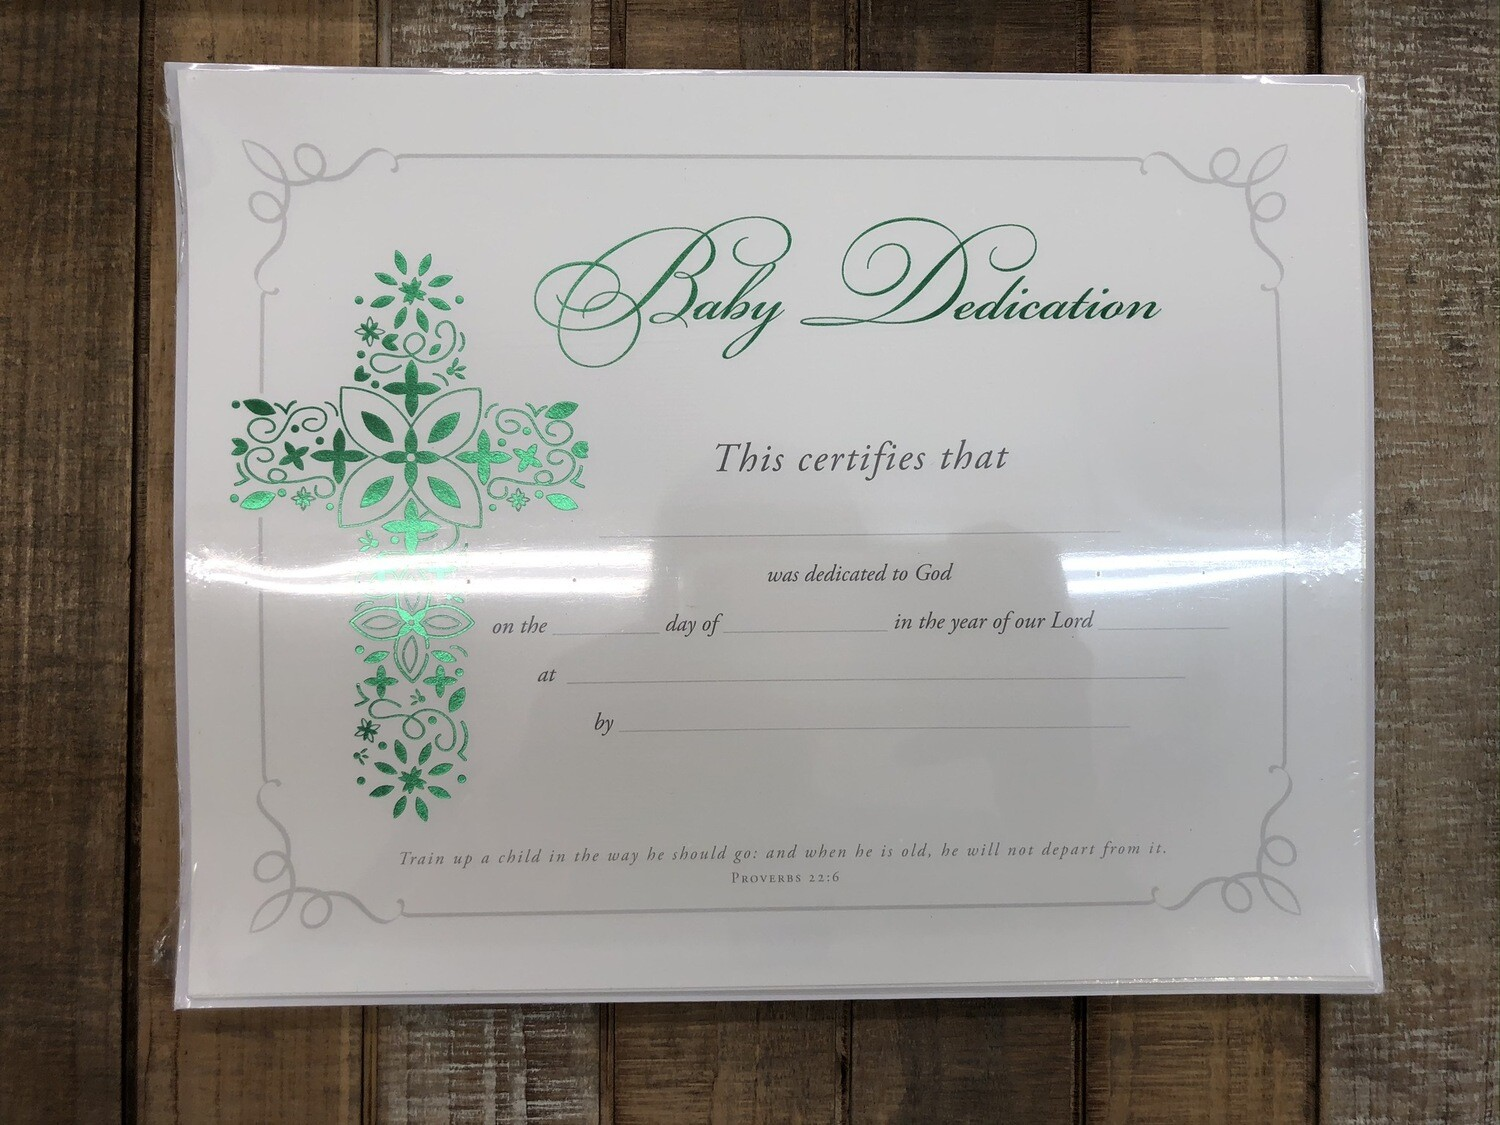 Baby Dedication Green Foil Certificates